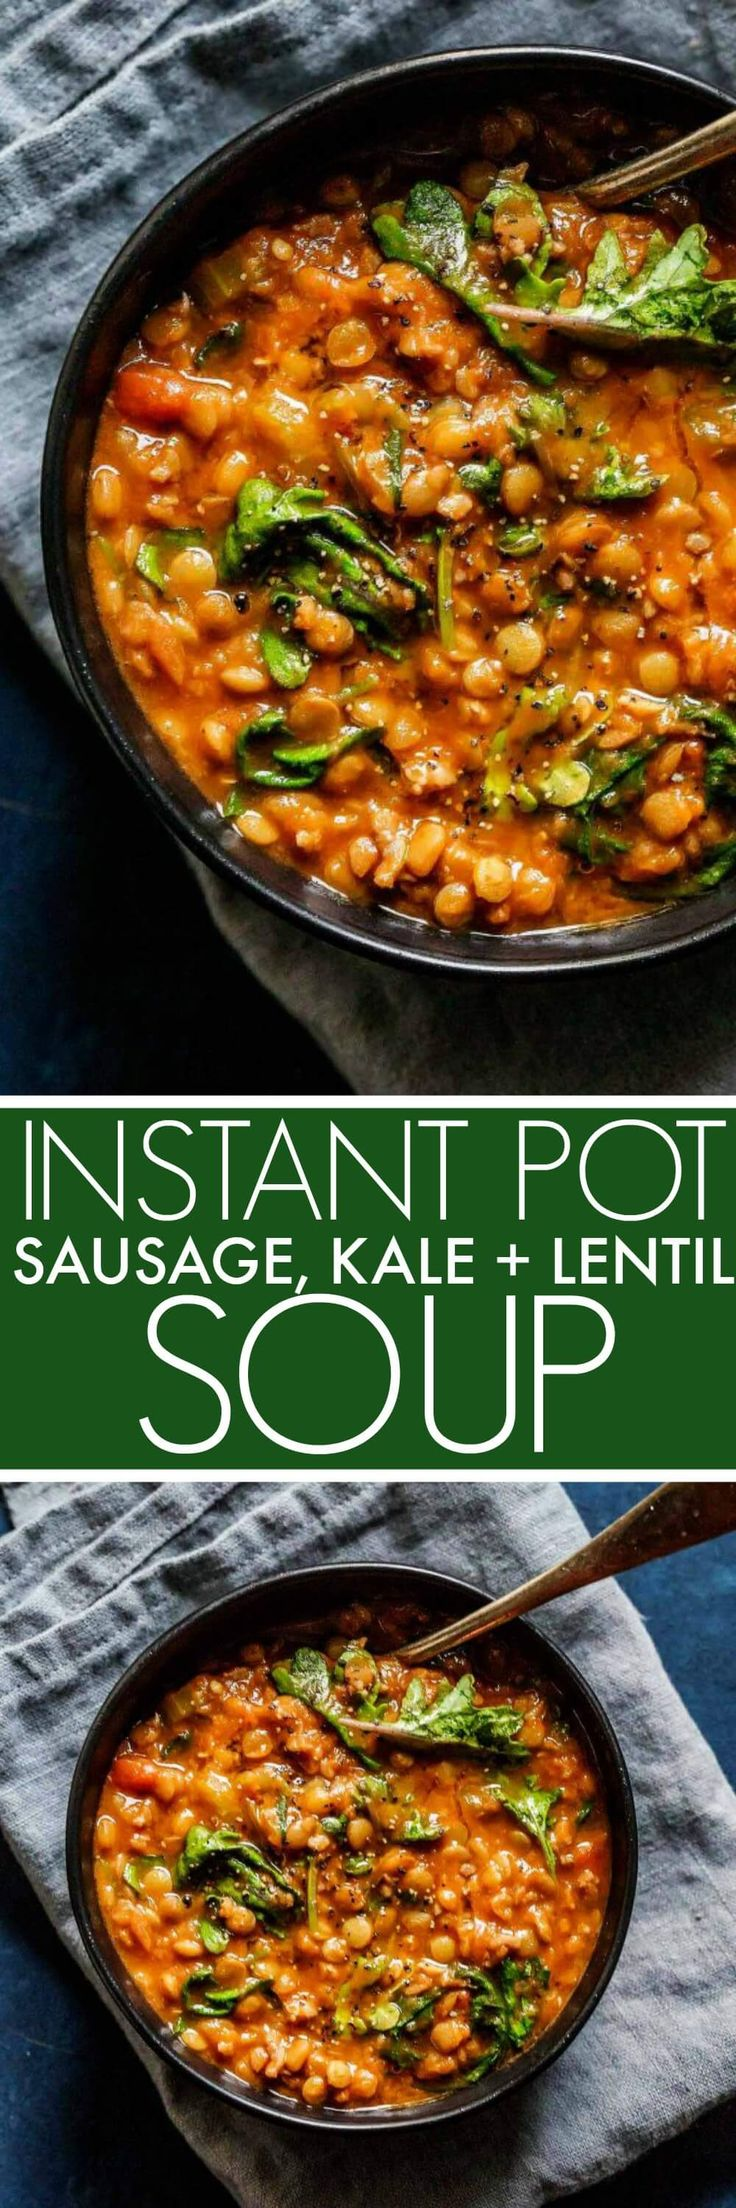 Instant Pot Sausage, Kale and Lentil Soup ~ this soup with sausage and kale comes together quickly...it's a hearty soup that's perfect from chilly days!